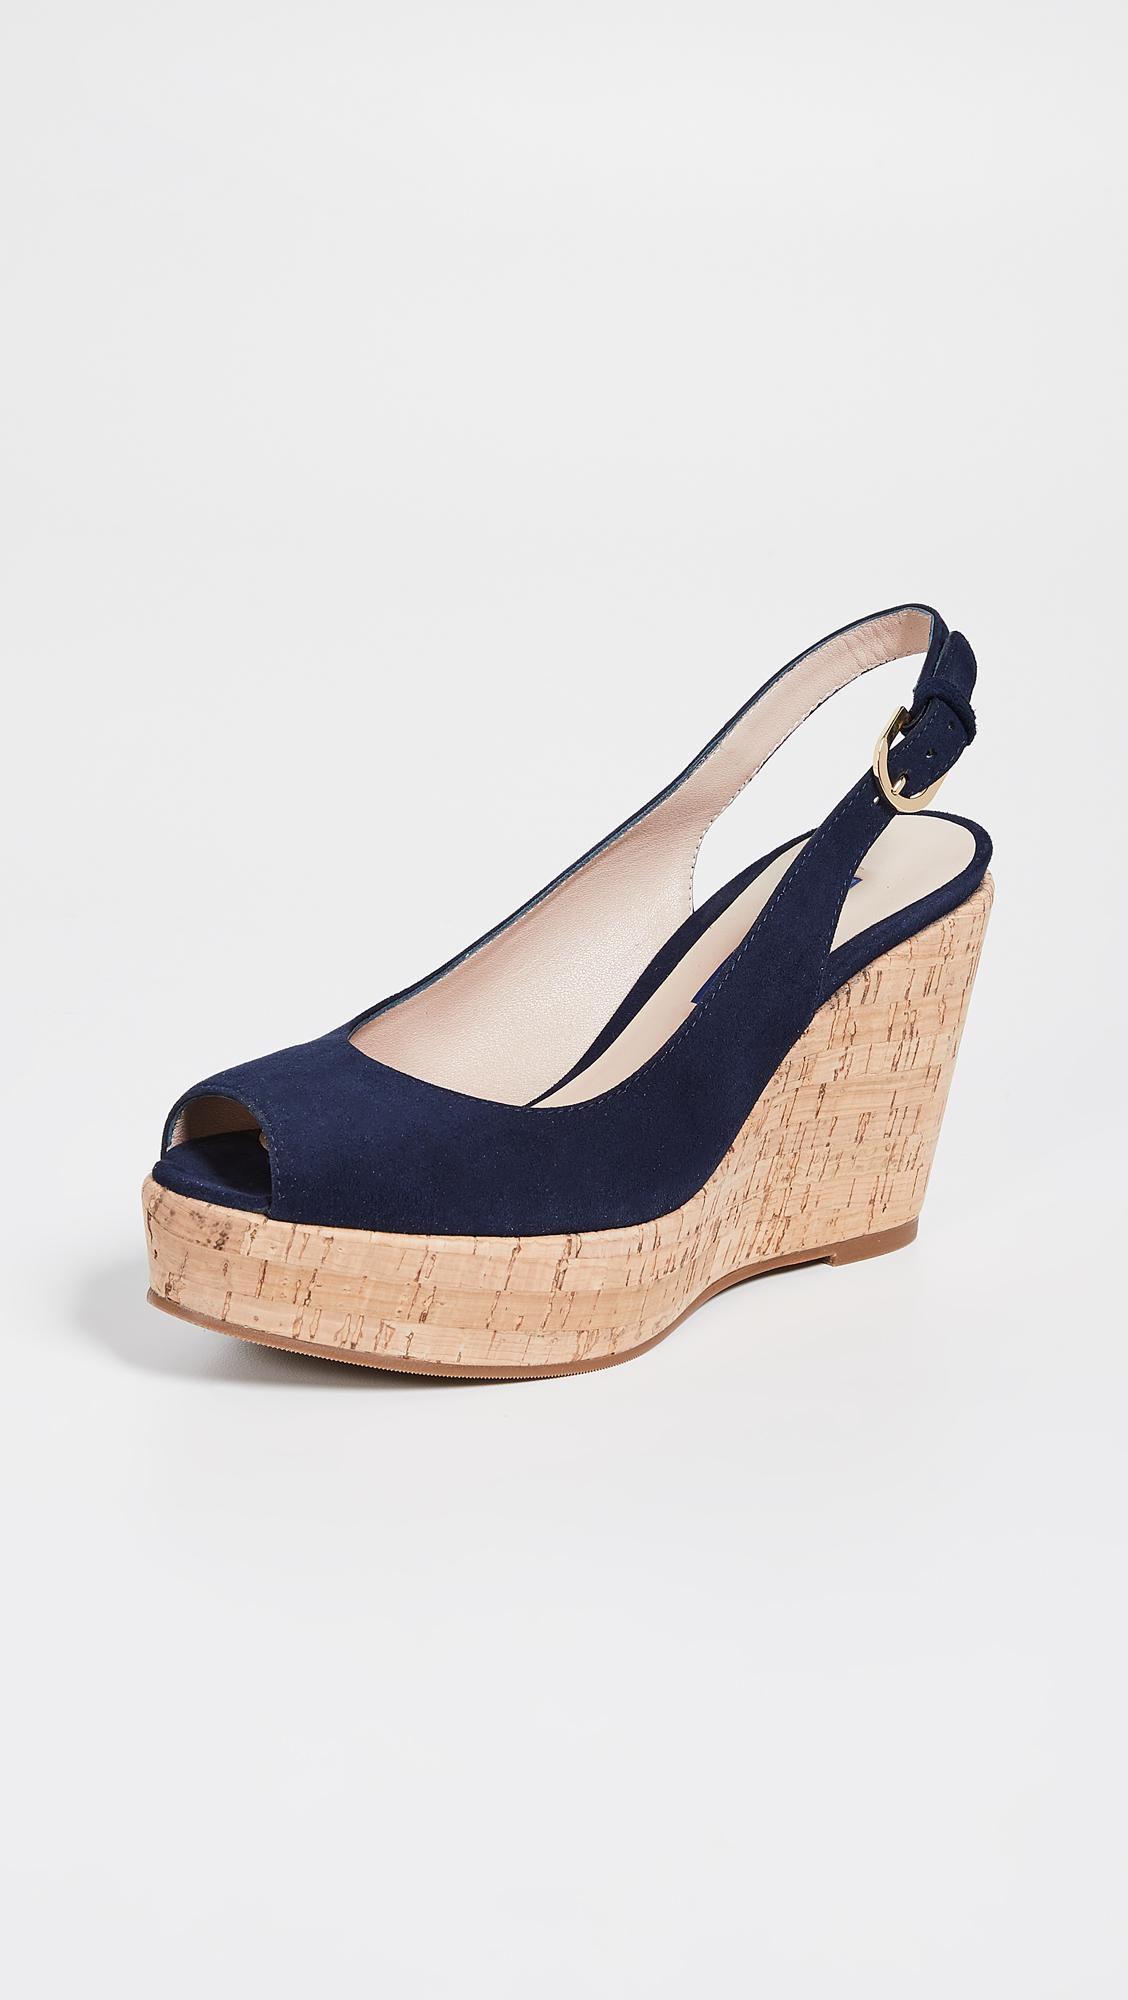 be9fc5e35e0a Stuart Weitzman Jean Slingbacks in Blue - Lyst